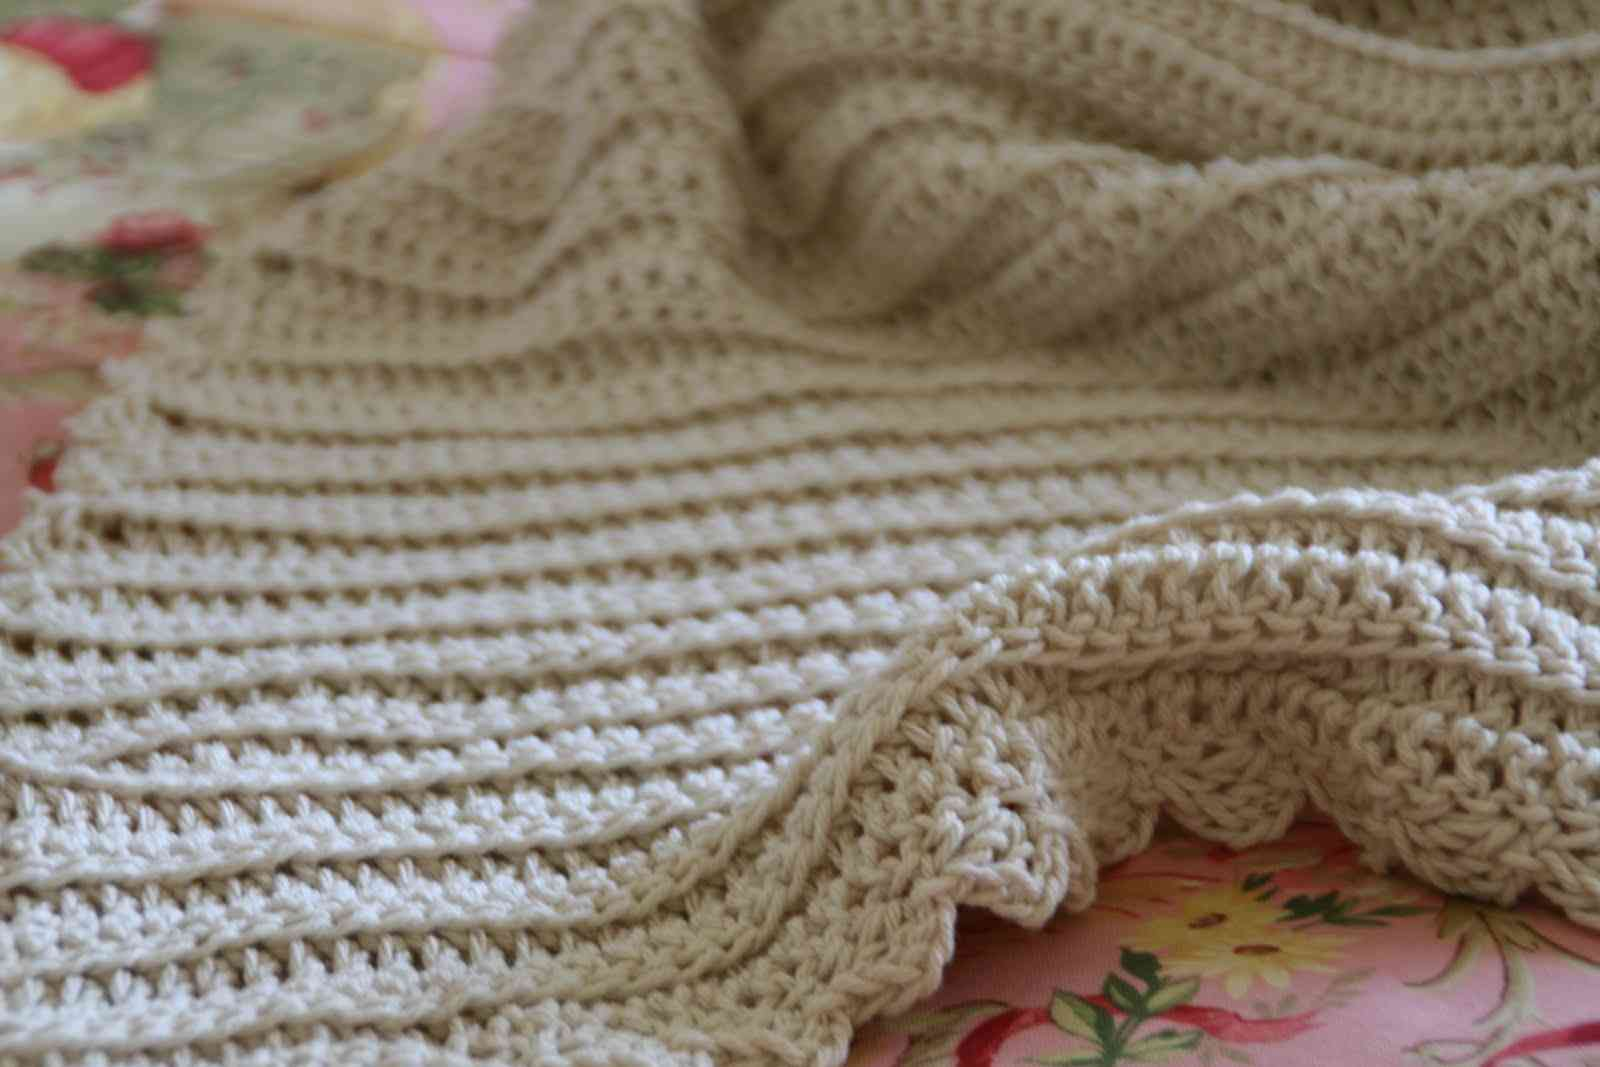 Crocheting Baby Blanket : crochet baby blanket 400x266 15 Most Popular Free Crochet Baby Blanket ...